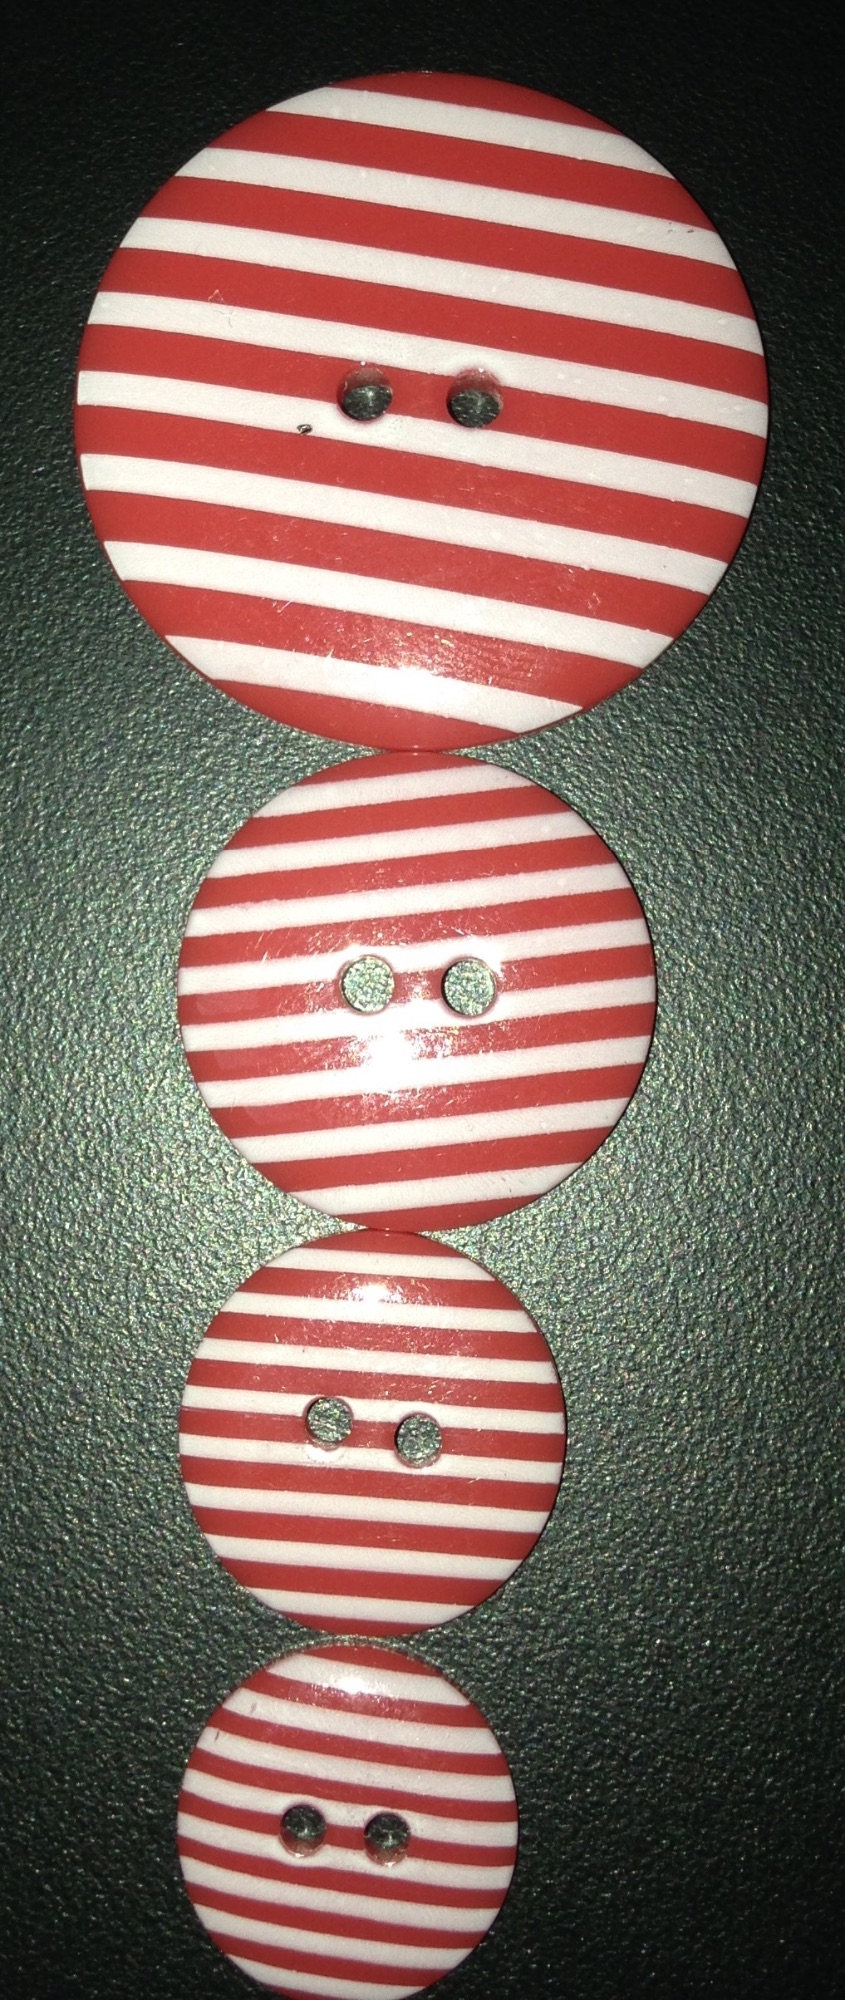 Buttons - Striped Red 329 P1725